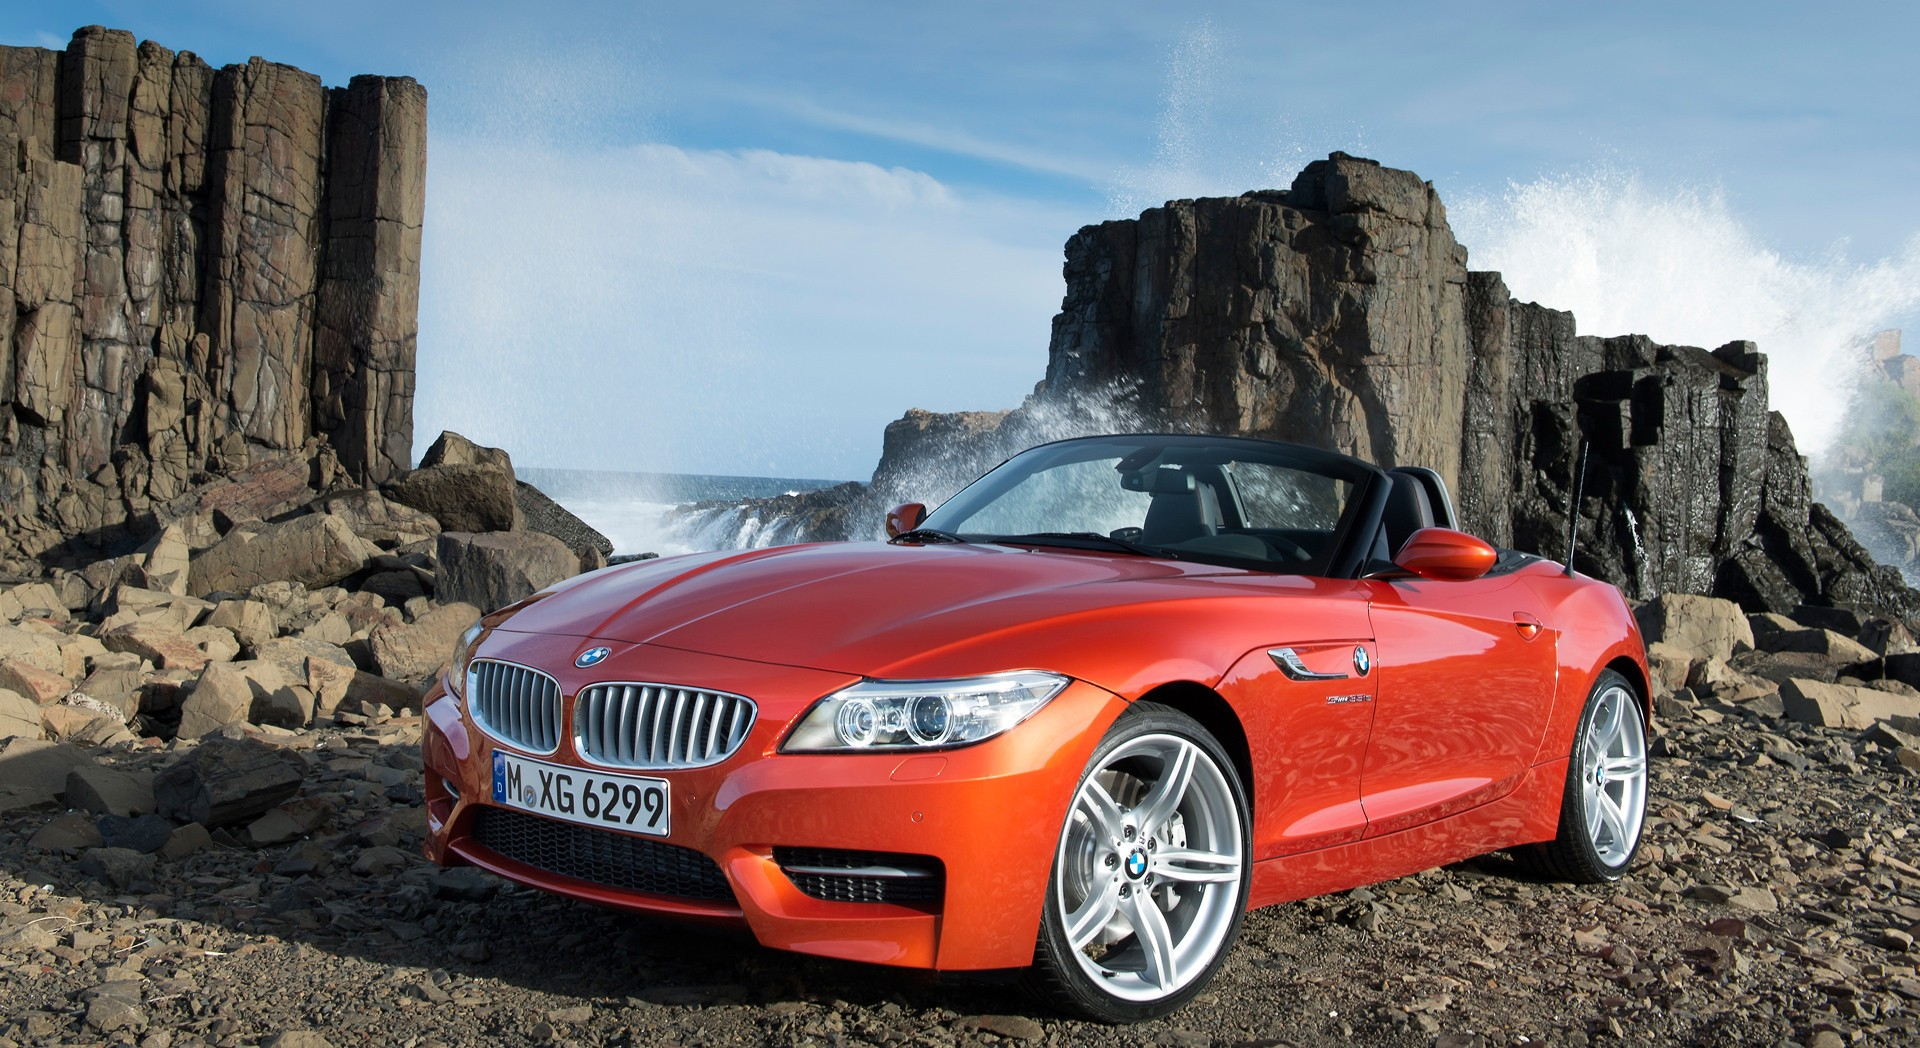 bmw z4 orange beach hd